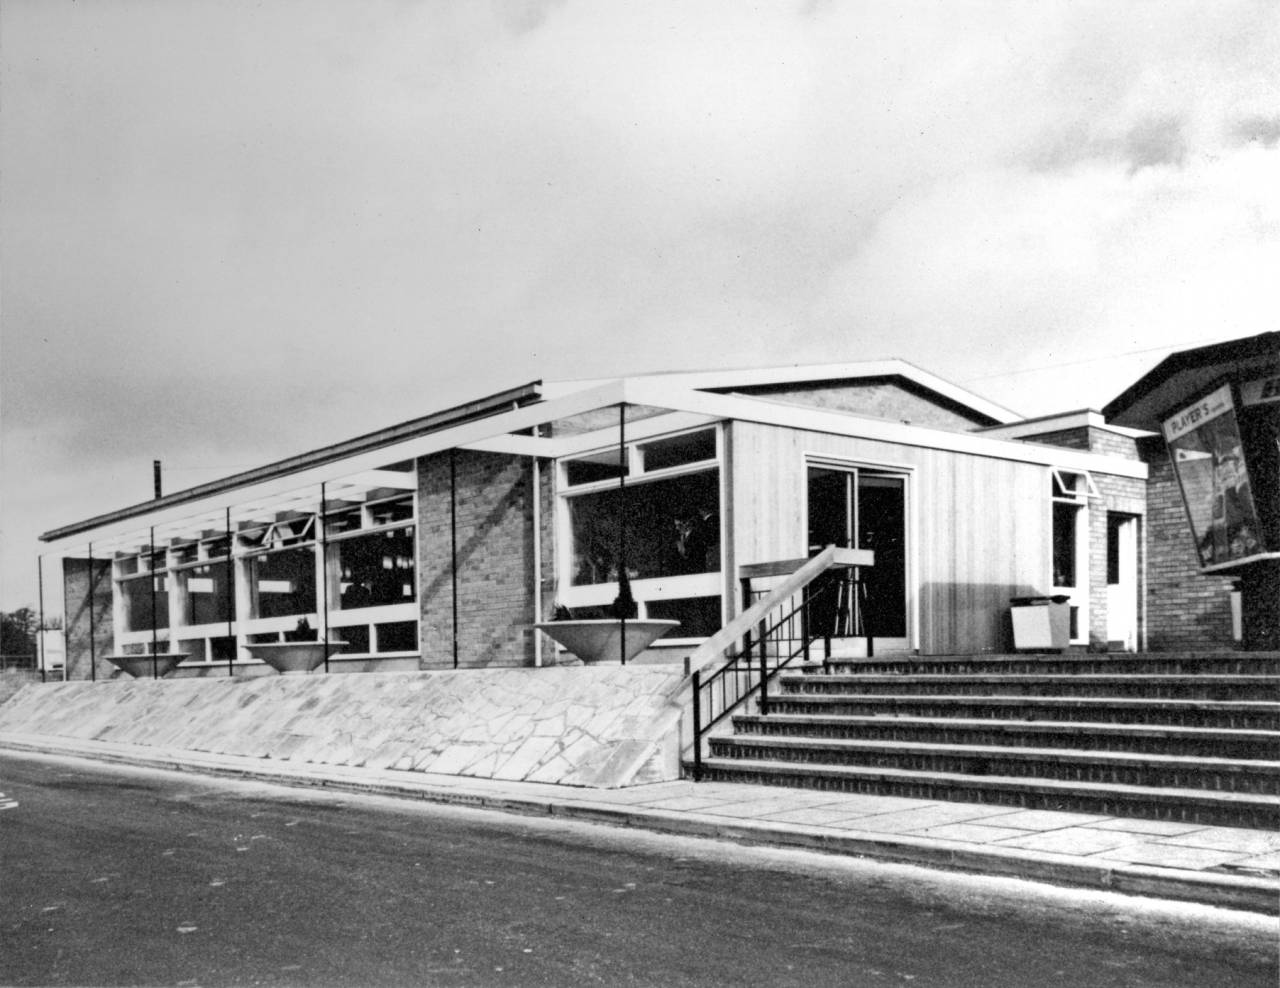 The original building at Watford Gap, taken not long after it was built.